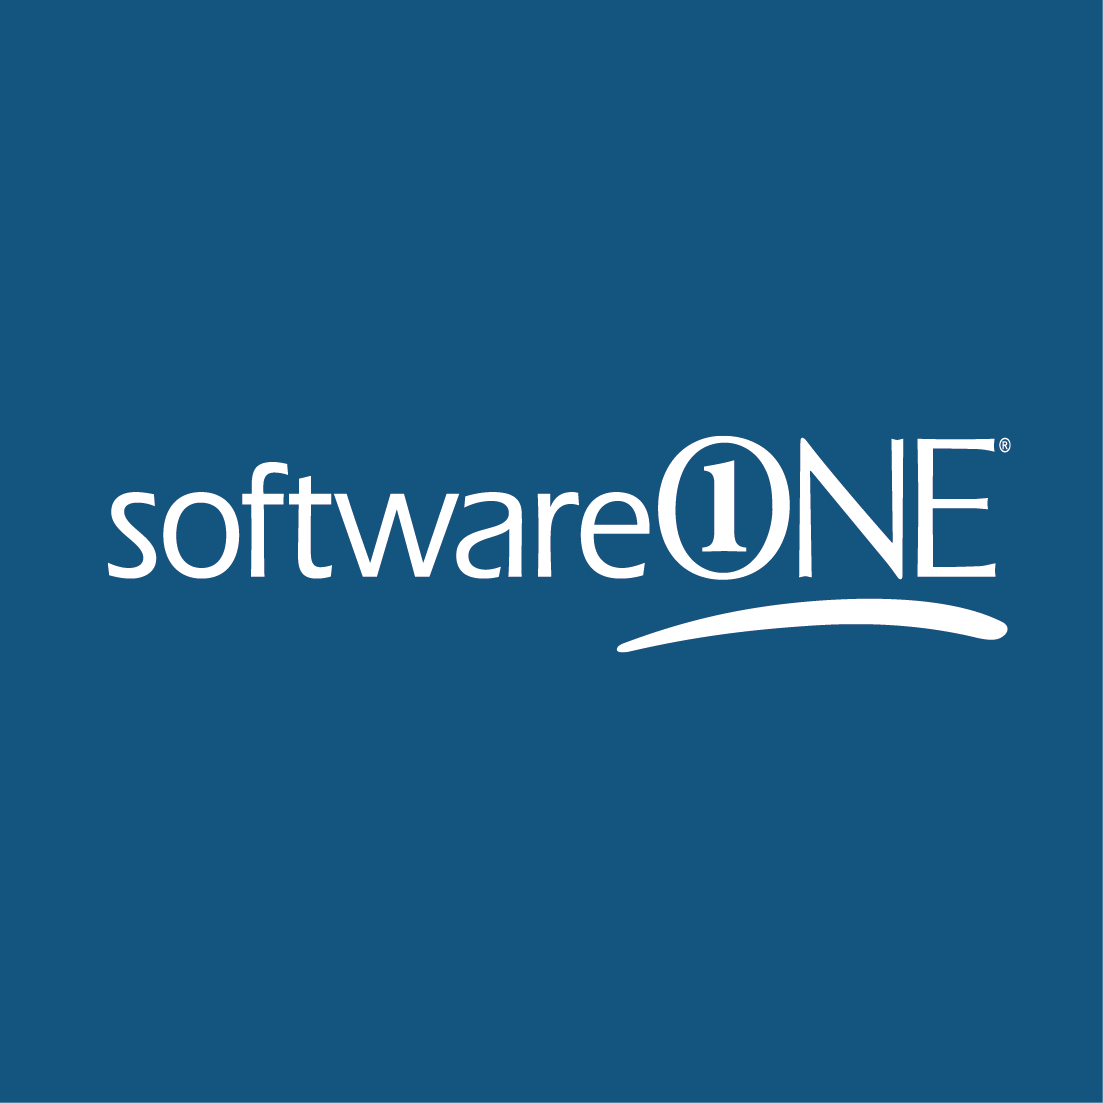 softwareone1.png